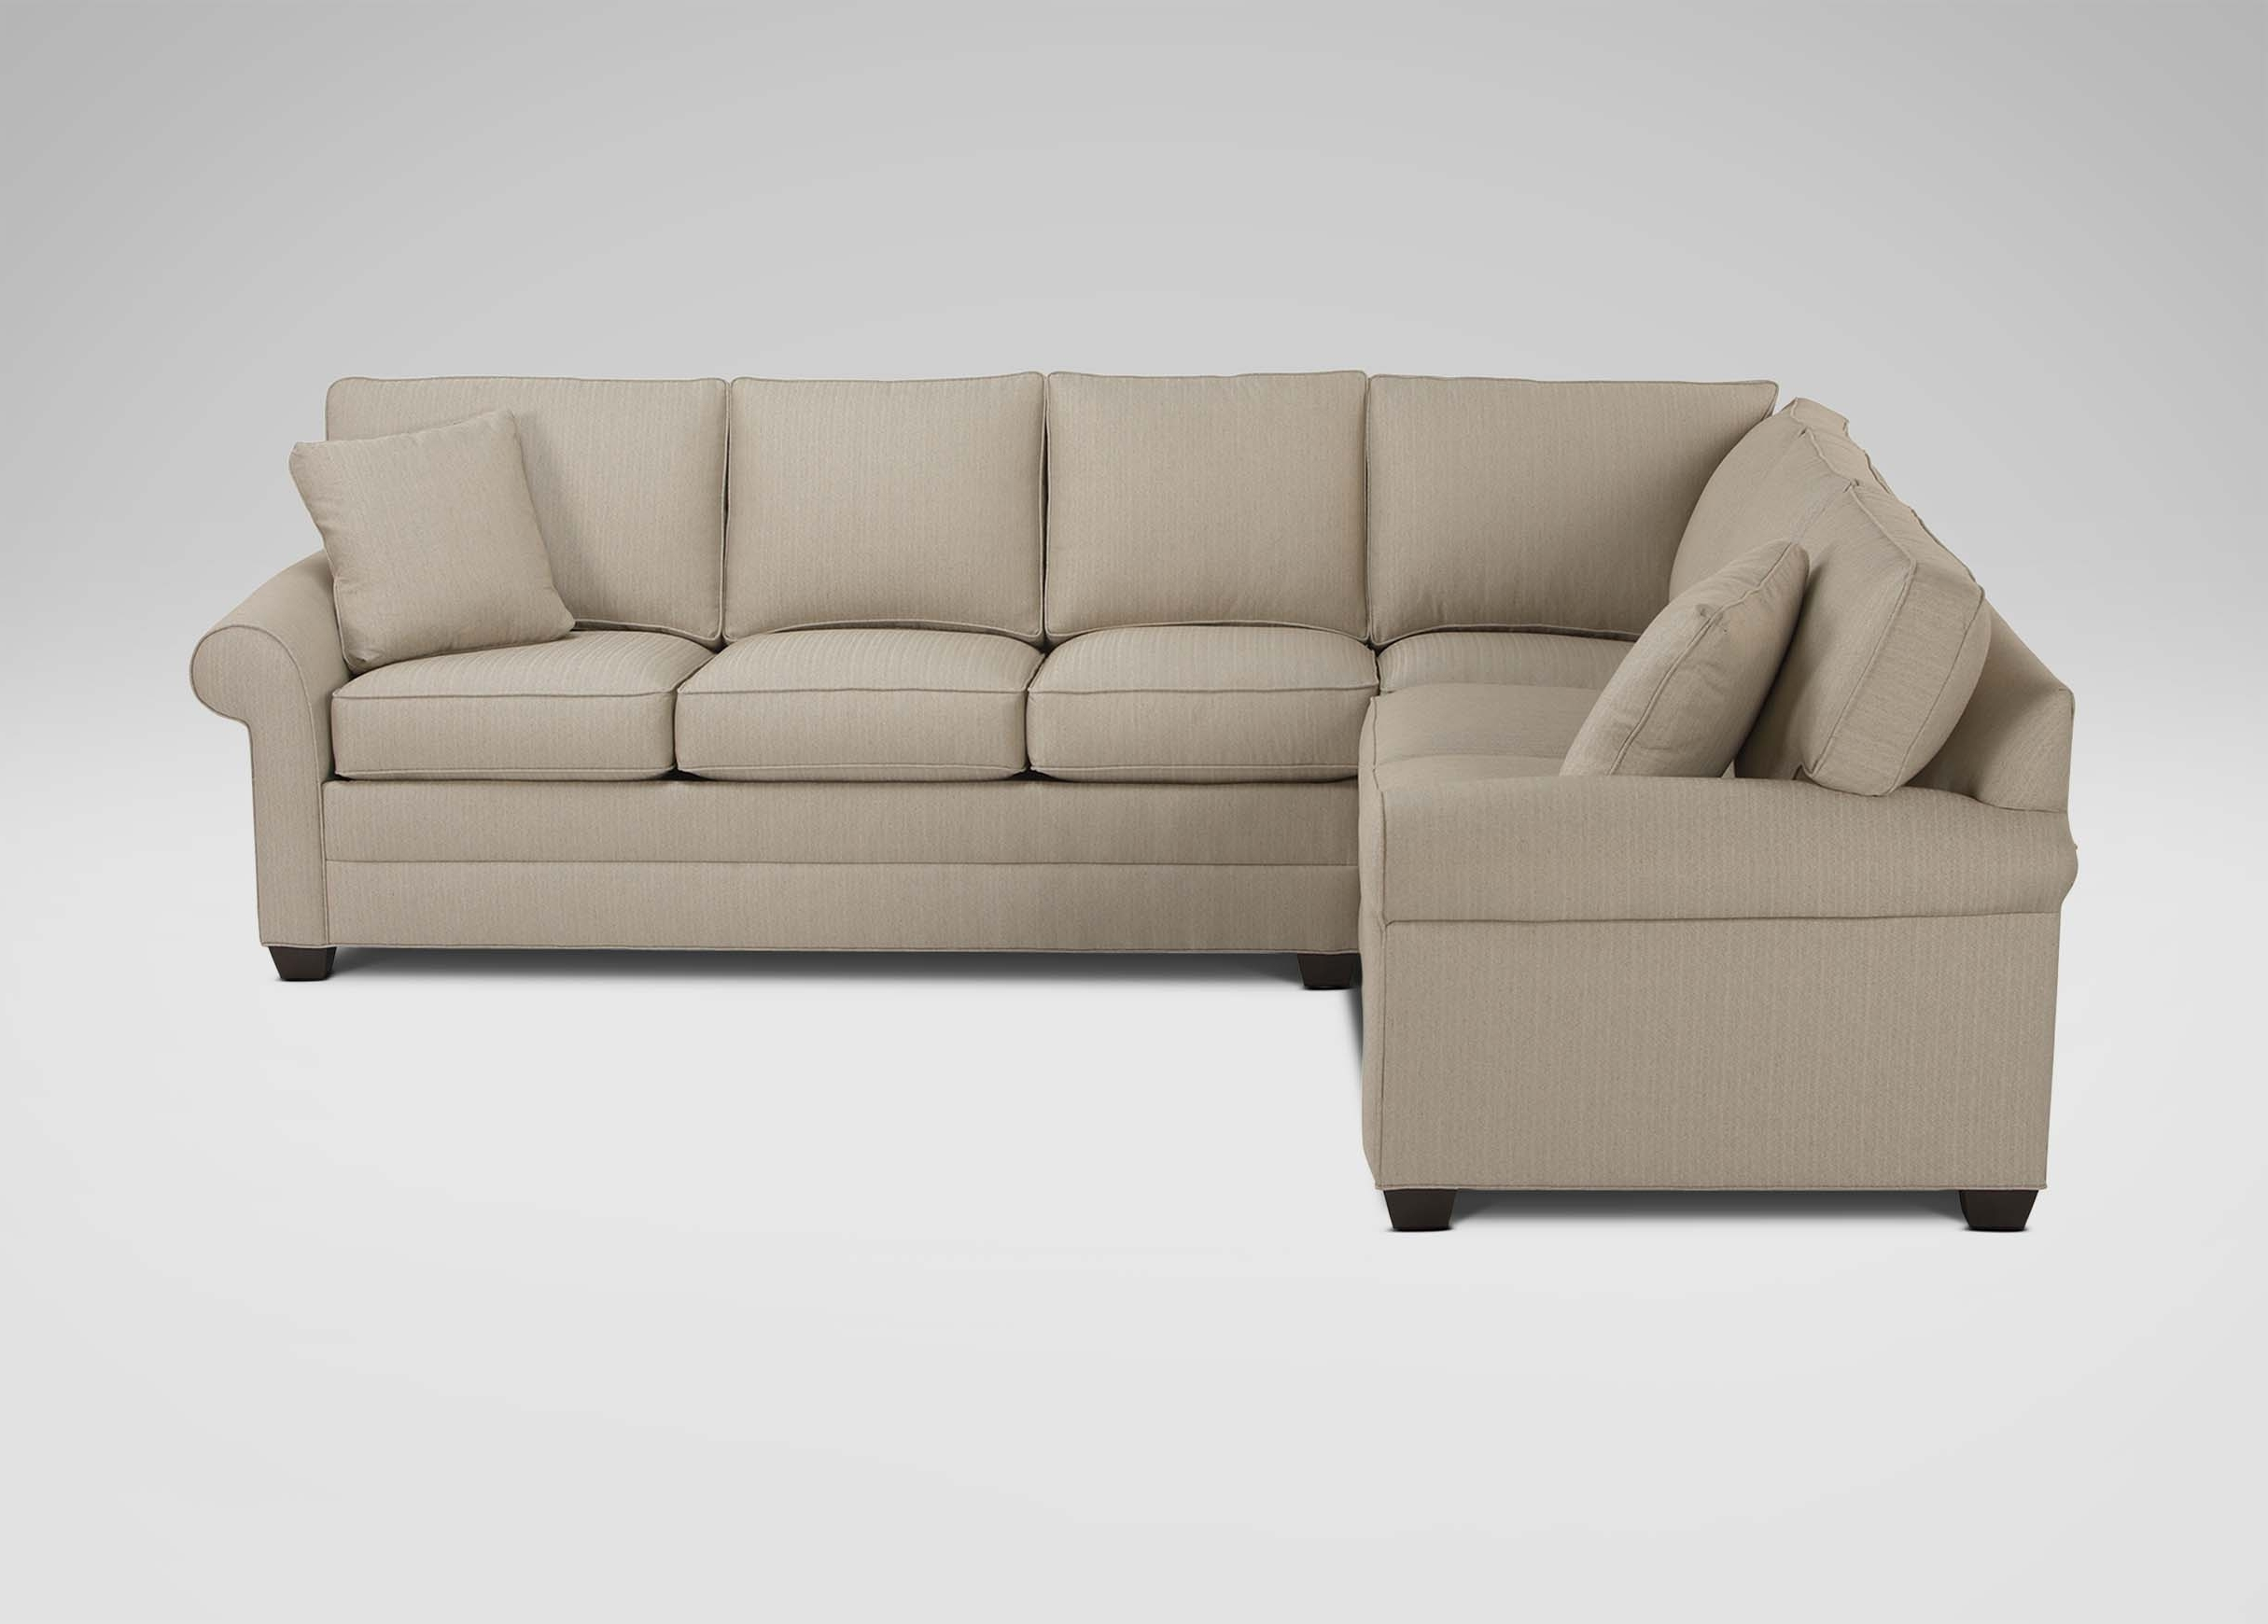 Sectional Sofas At Ethan Allen With Regard To Popular Bennett Roll Arm Sectional (View 11 of 15)